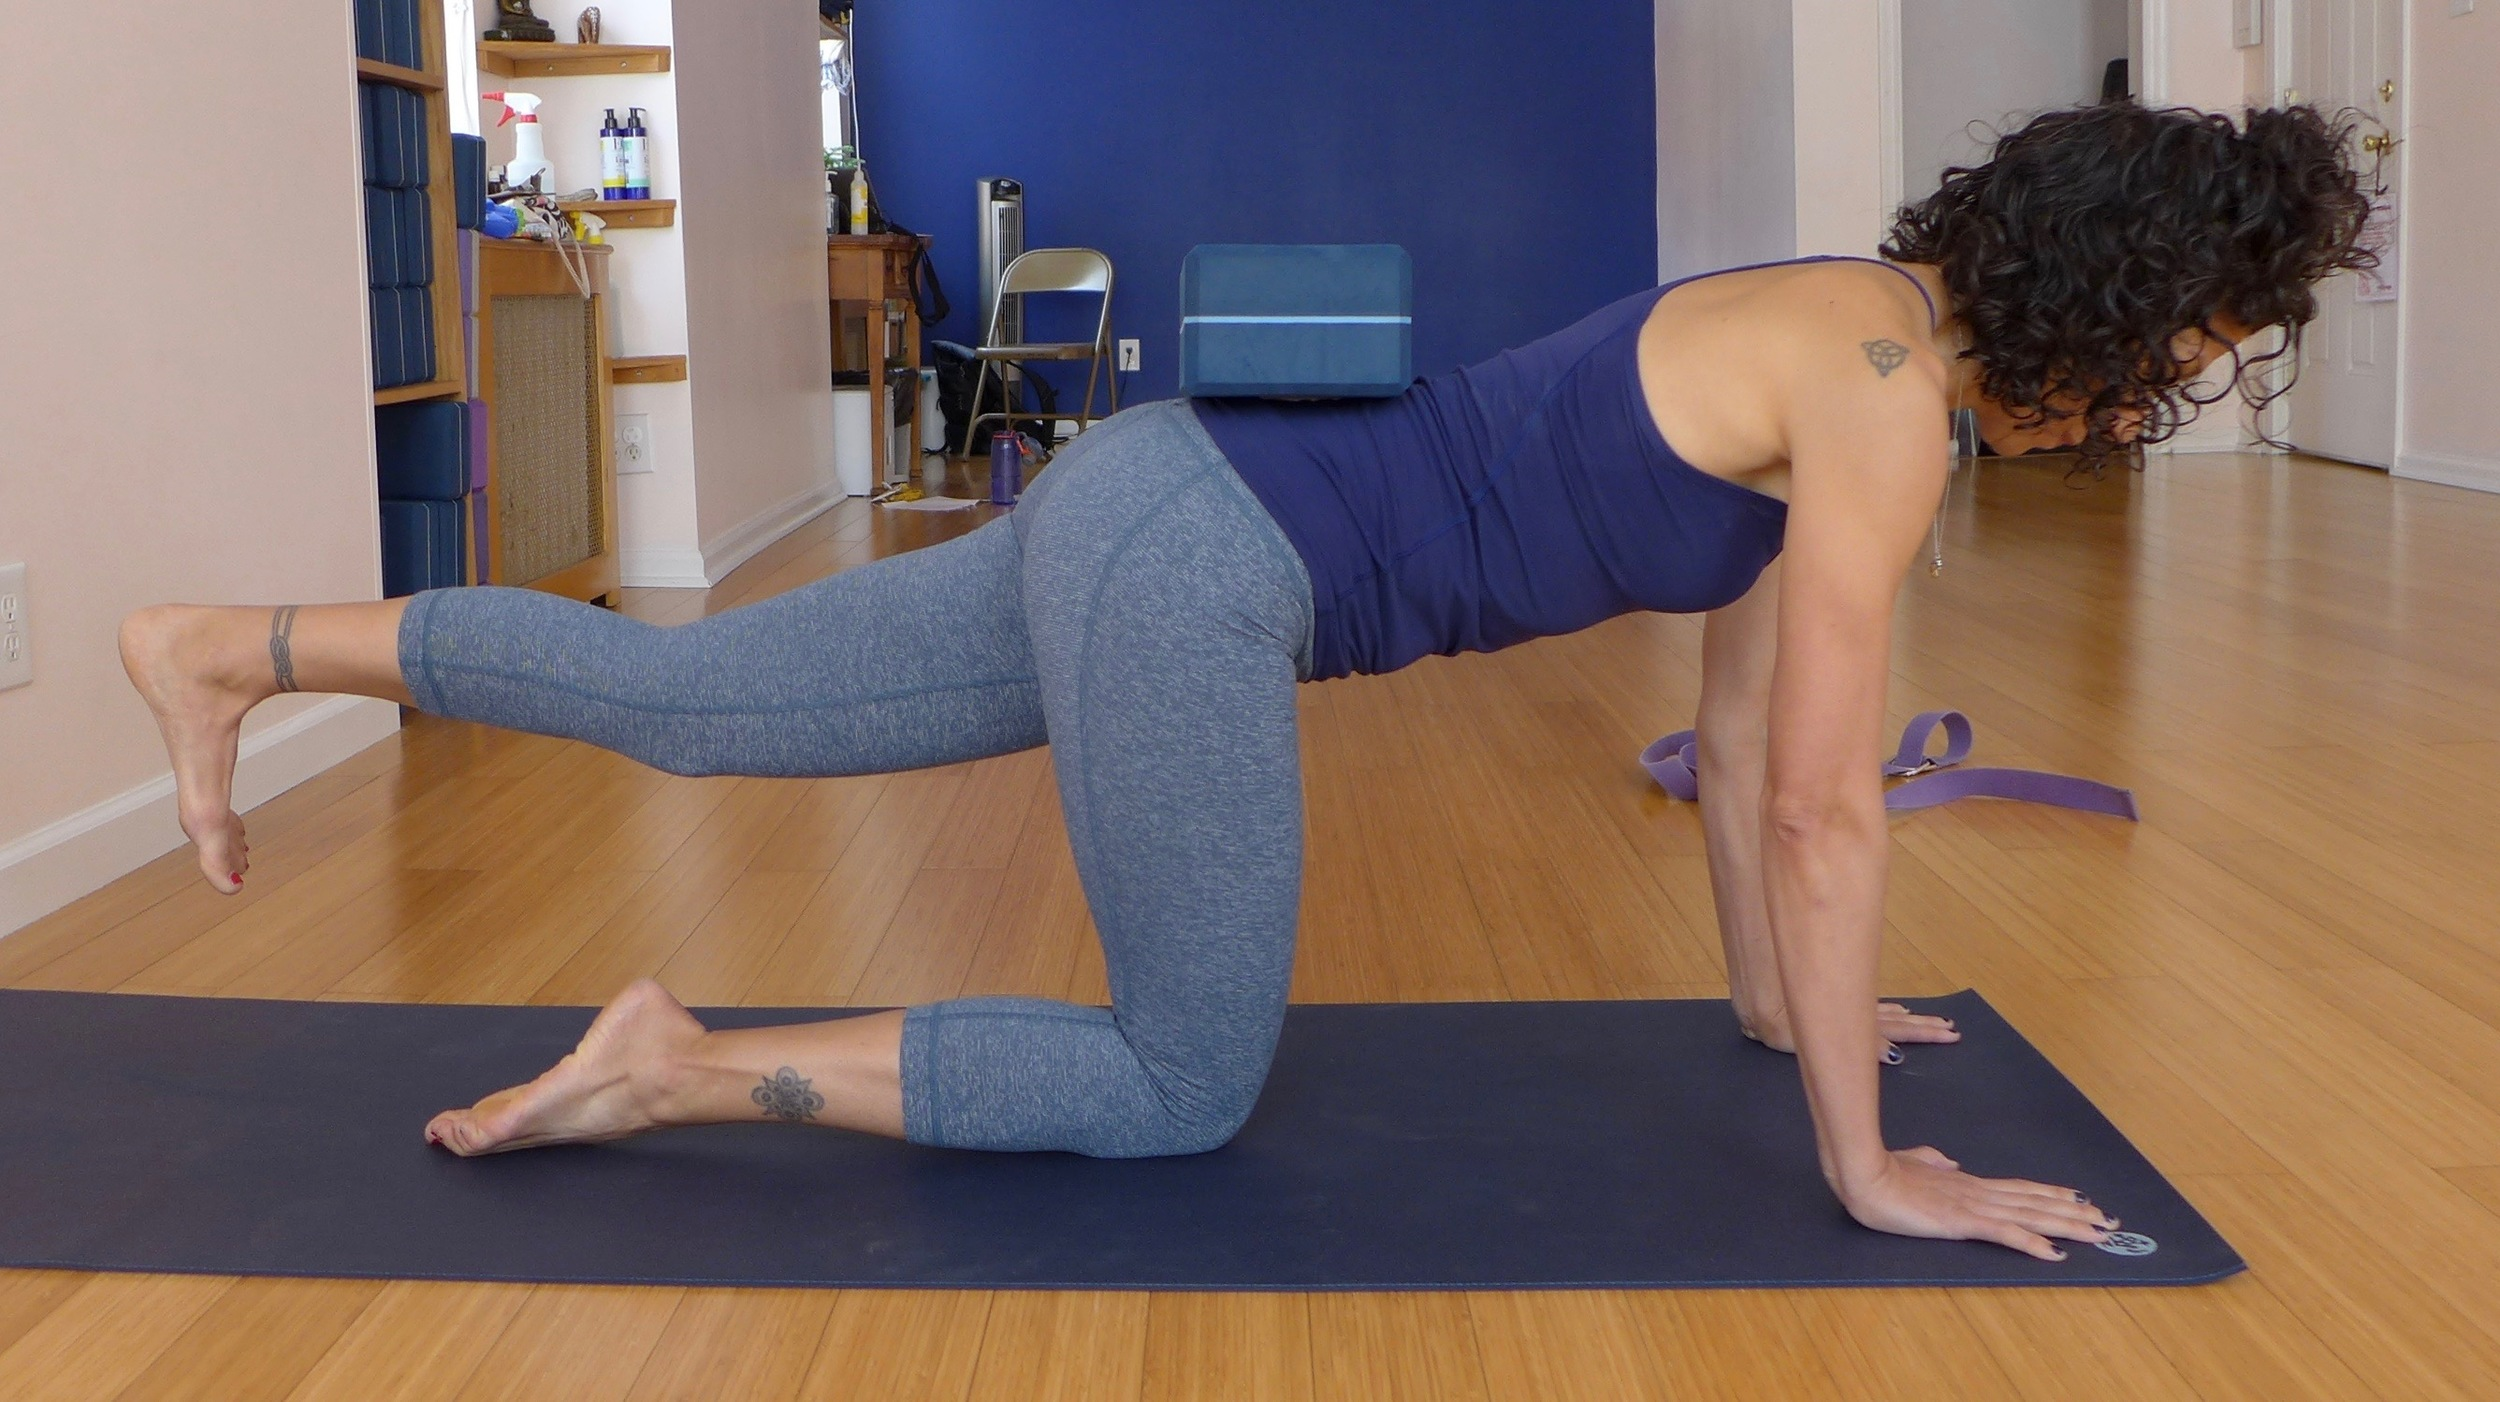 Opposite leg balance, elevated leg: Once you're stable in your pelvis, elevate the back leg. Stay out of external rotation of the elevated leg, keeping the hip points level. Focus on full hip extension and bracing the abdominal wall. Let the block inform you of where your pelvis is in space.  Hold for five breaths, then change sides.